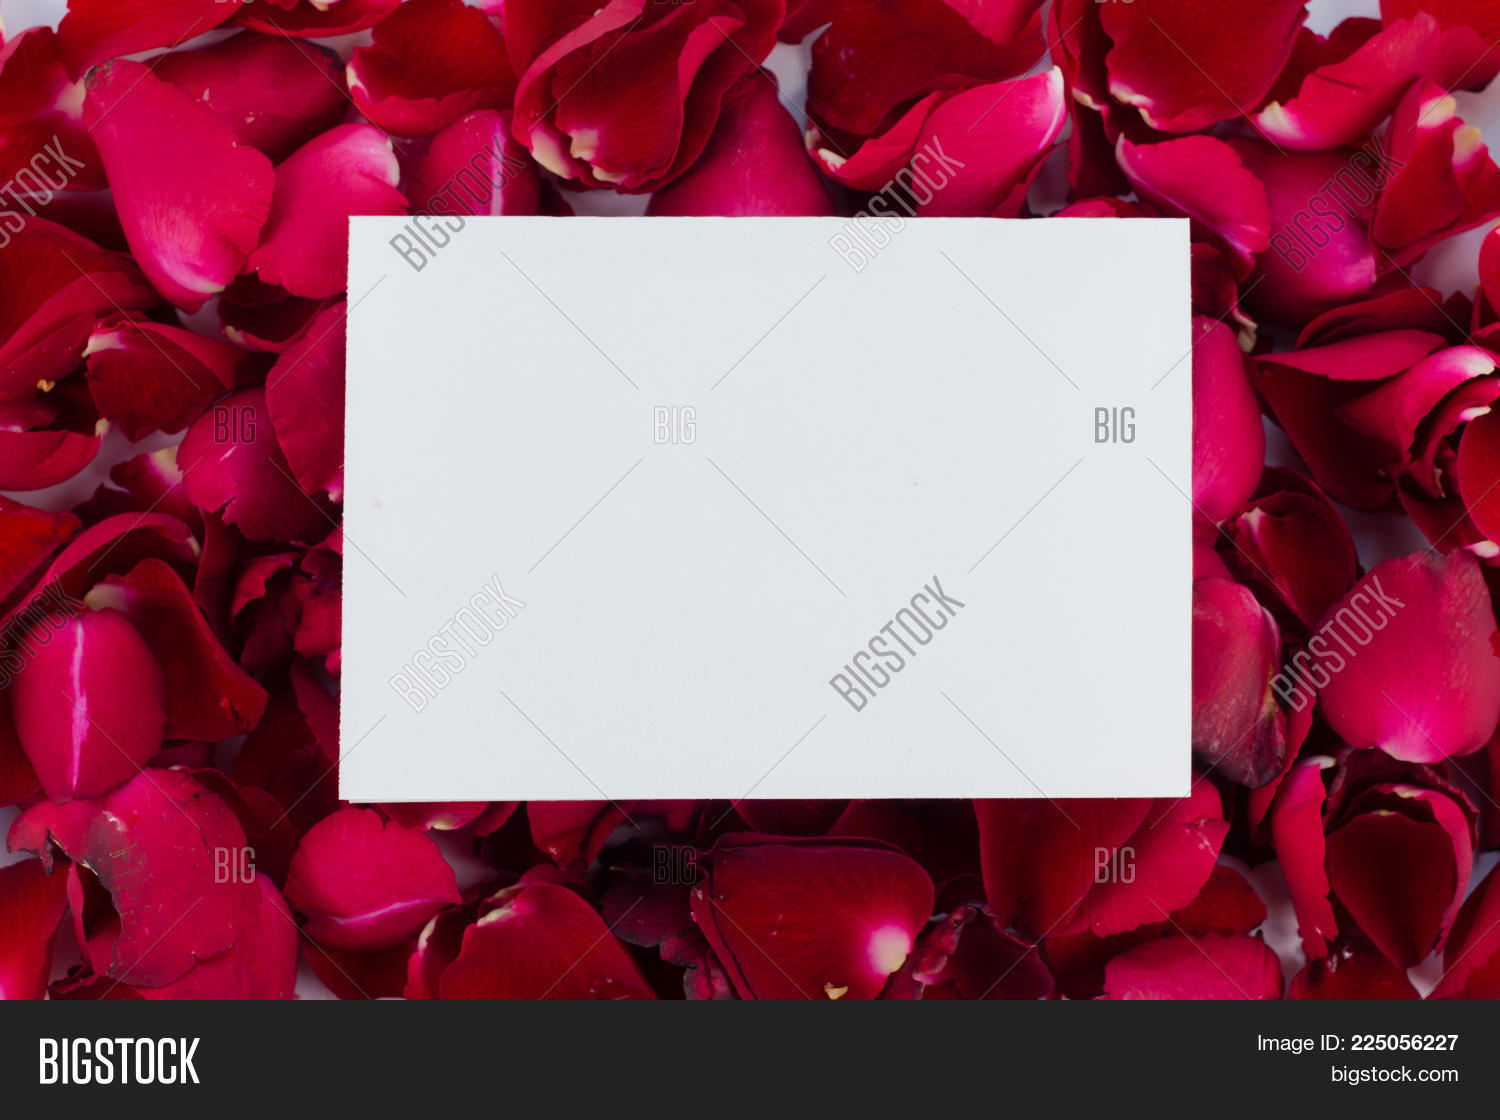 Greeting Card Red Rose Image Photo Free Trial Bigstock